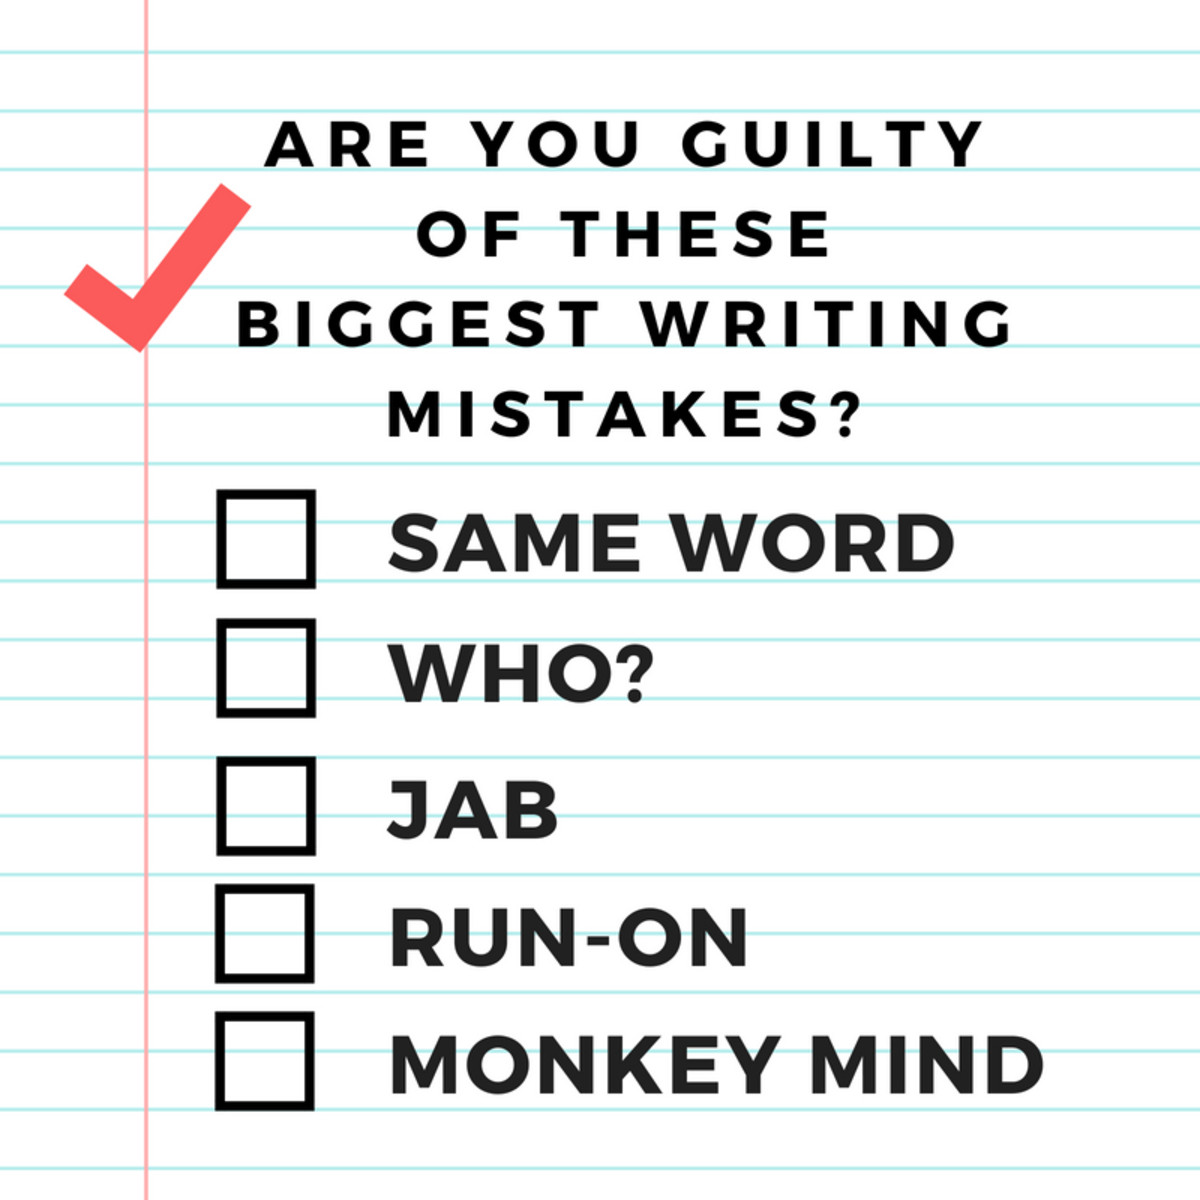 biggest-writing-mistakes-for-books-and-blogs